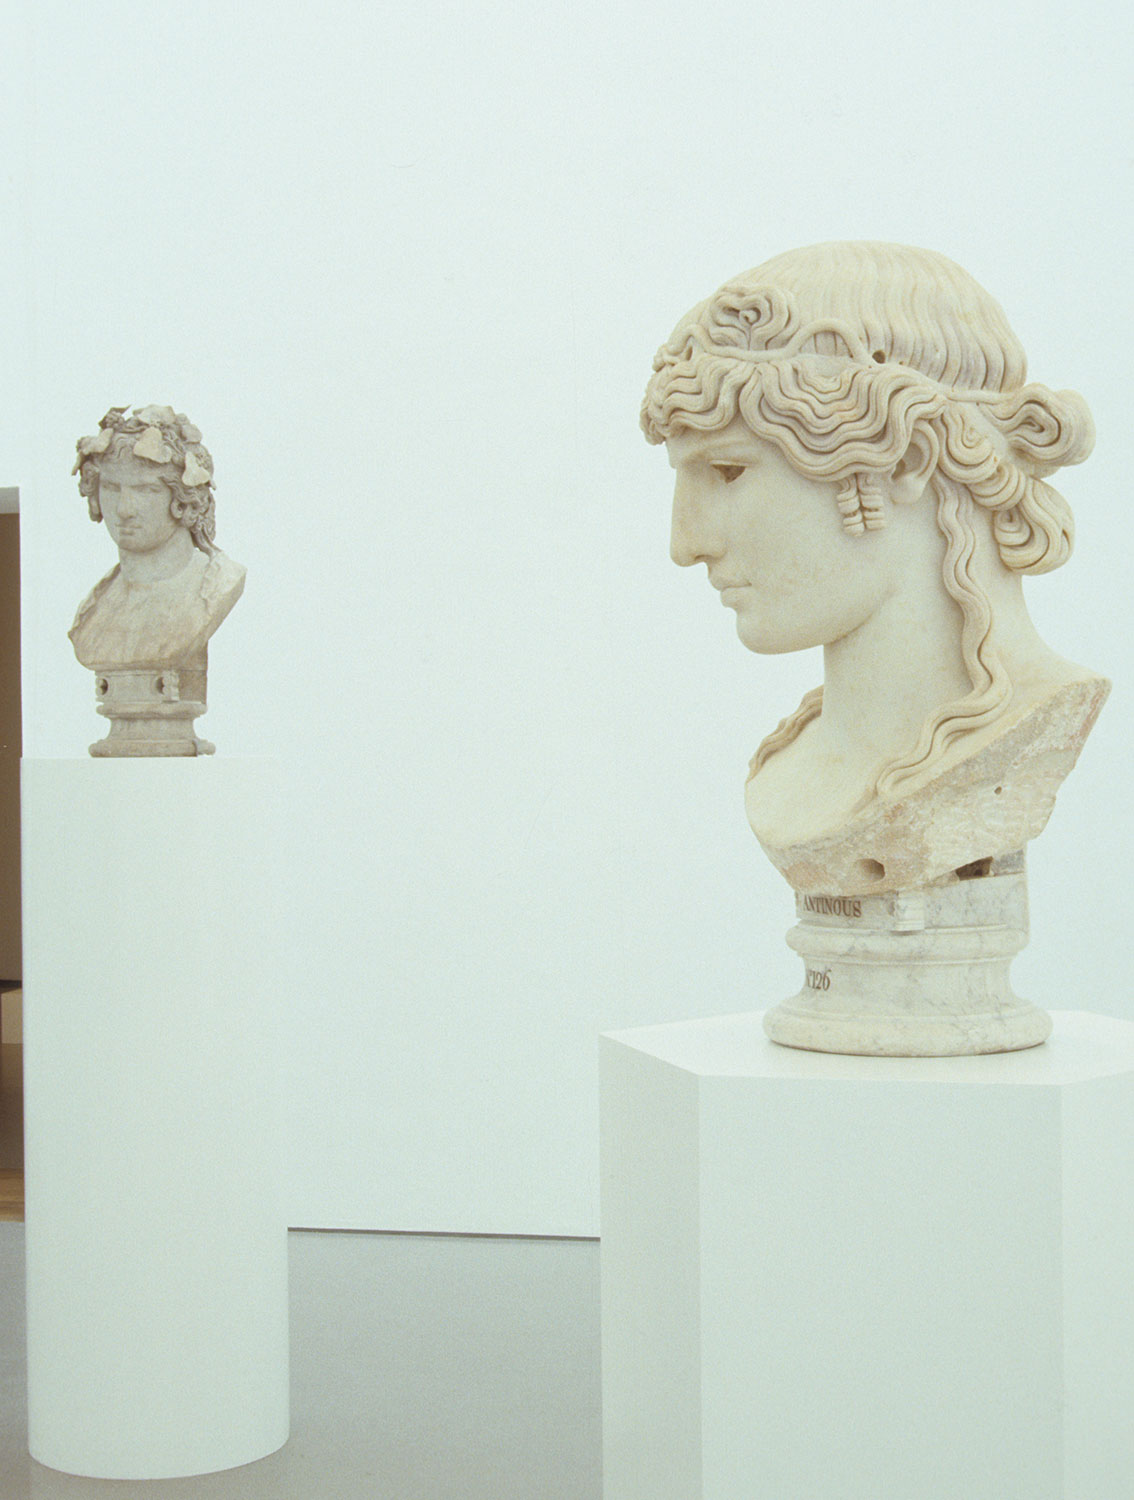 Installation view of Antinous 1